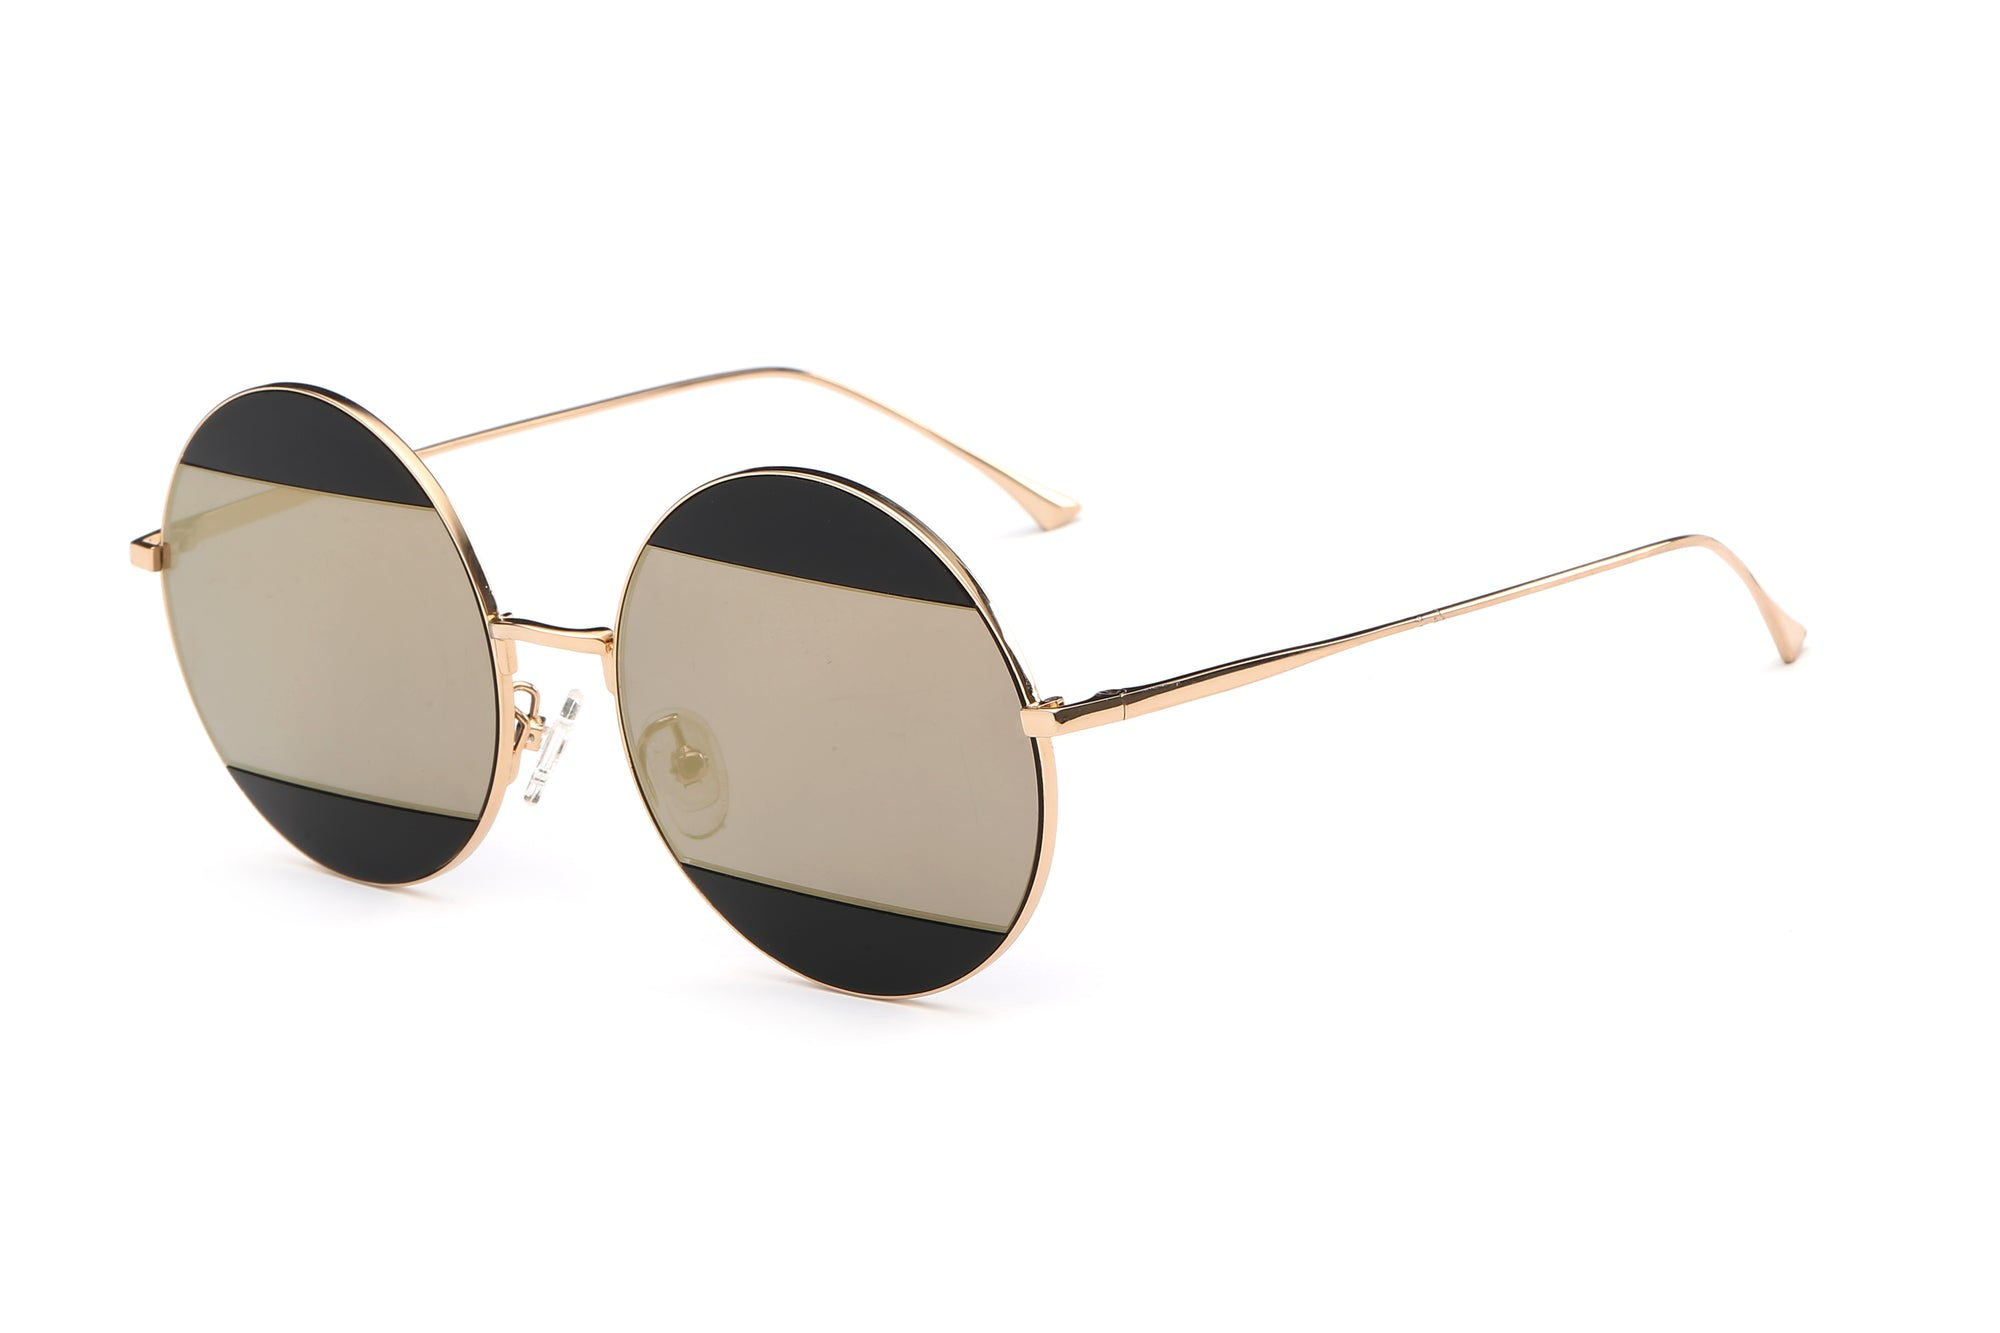 PSRR-J6675 - Women Round Fashion Sunglasses - Iris Fashion Inc. | Wholesale Sunglasses and Glasses